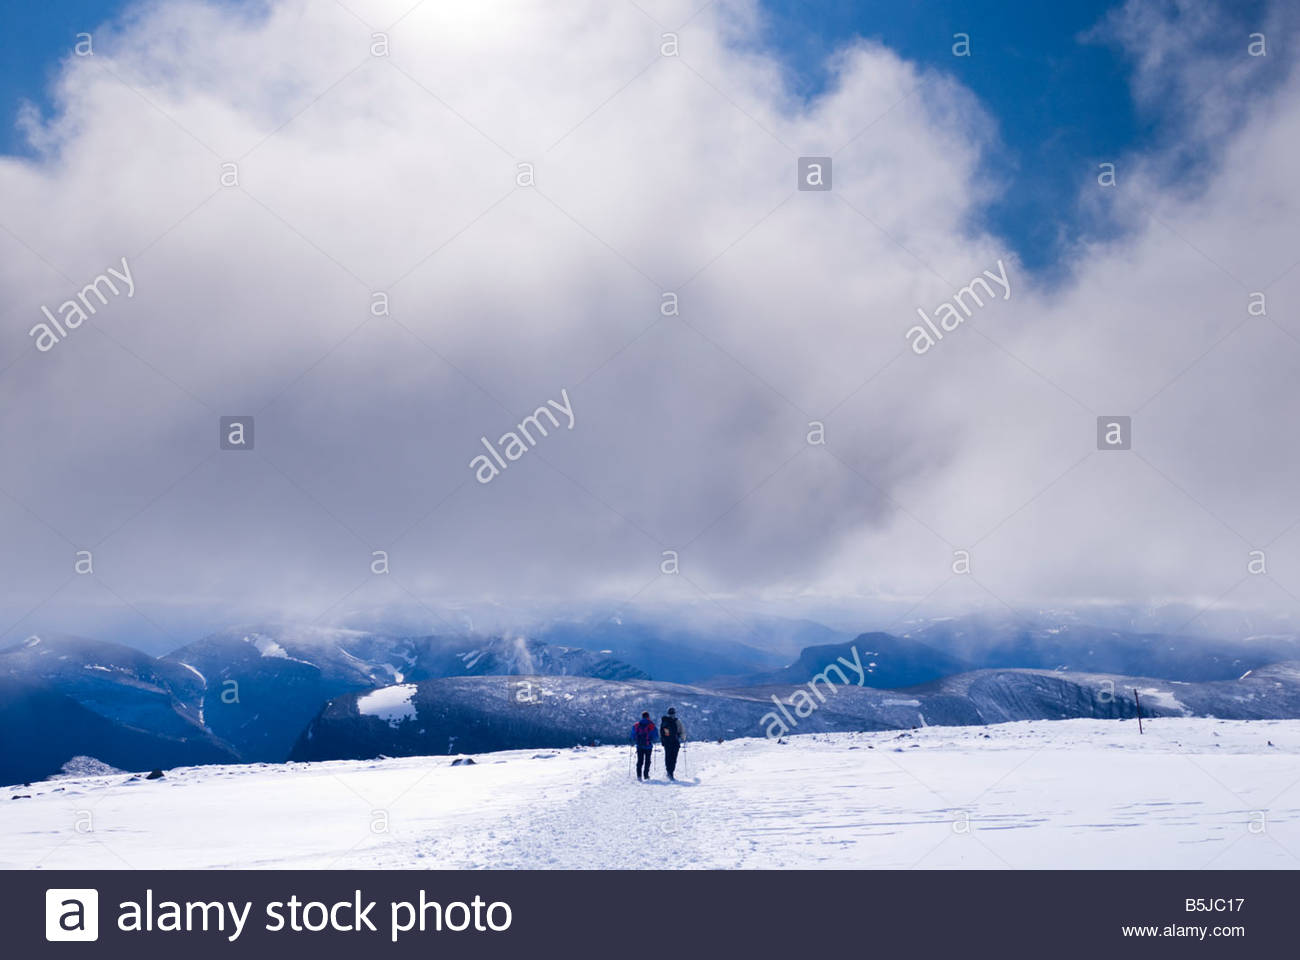 Two hikers descending from the summit of Kebnekaise, Sweden's highest mountain. - Stock Image